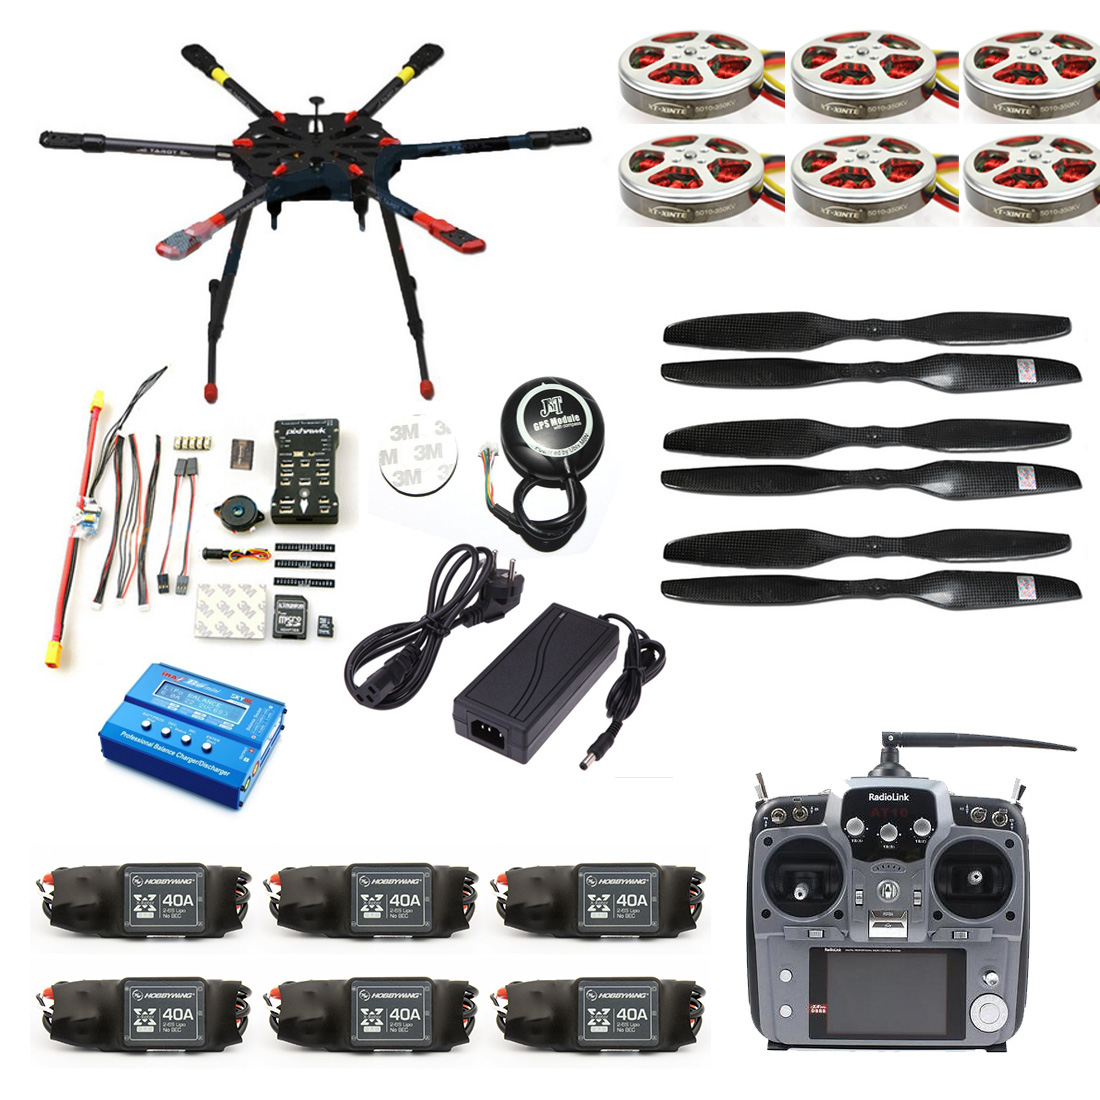 Pro 2.4G 10CH 960mm RC Hexacopter Drone X6 Folding Retractable PIX PX4 M8N GPS ARF/PNF DIY Unassembly Kit F11283-A/B